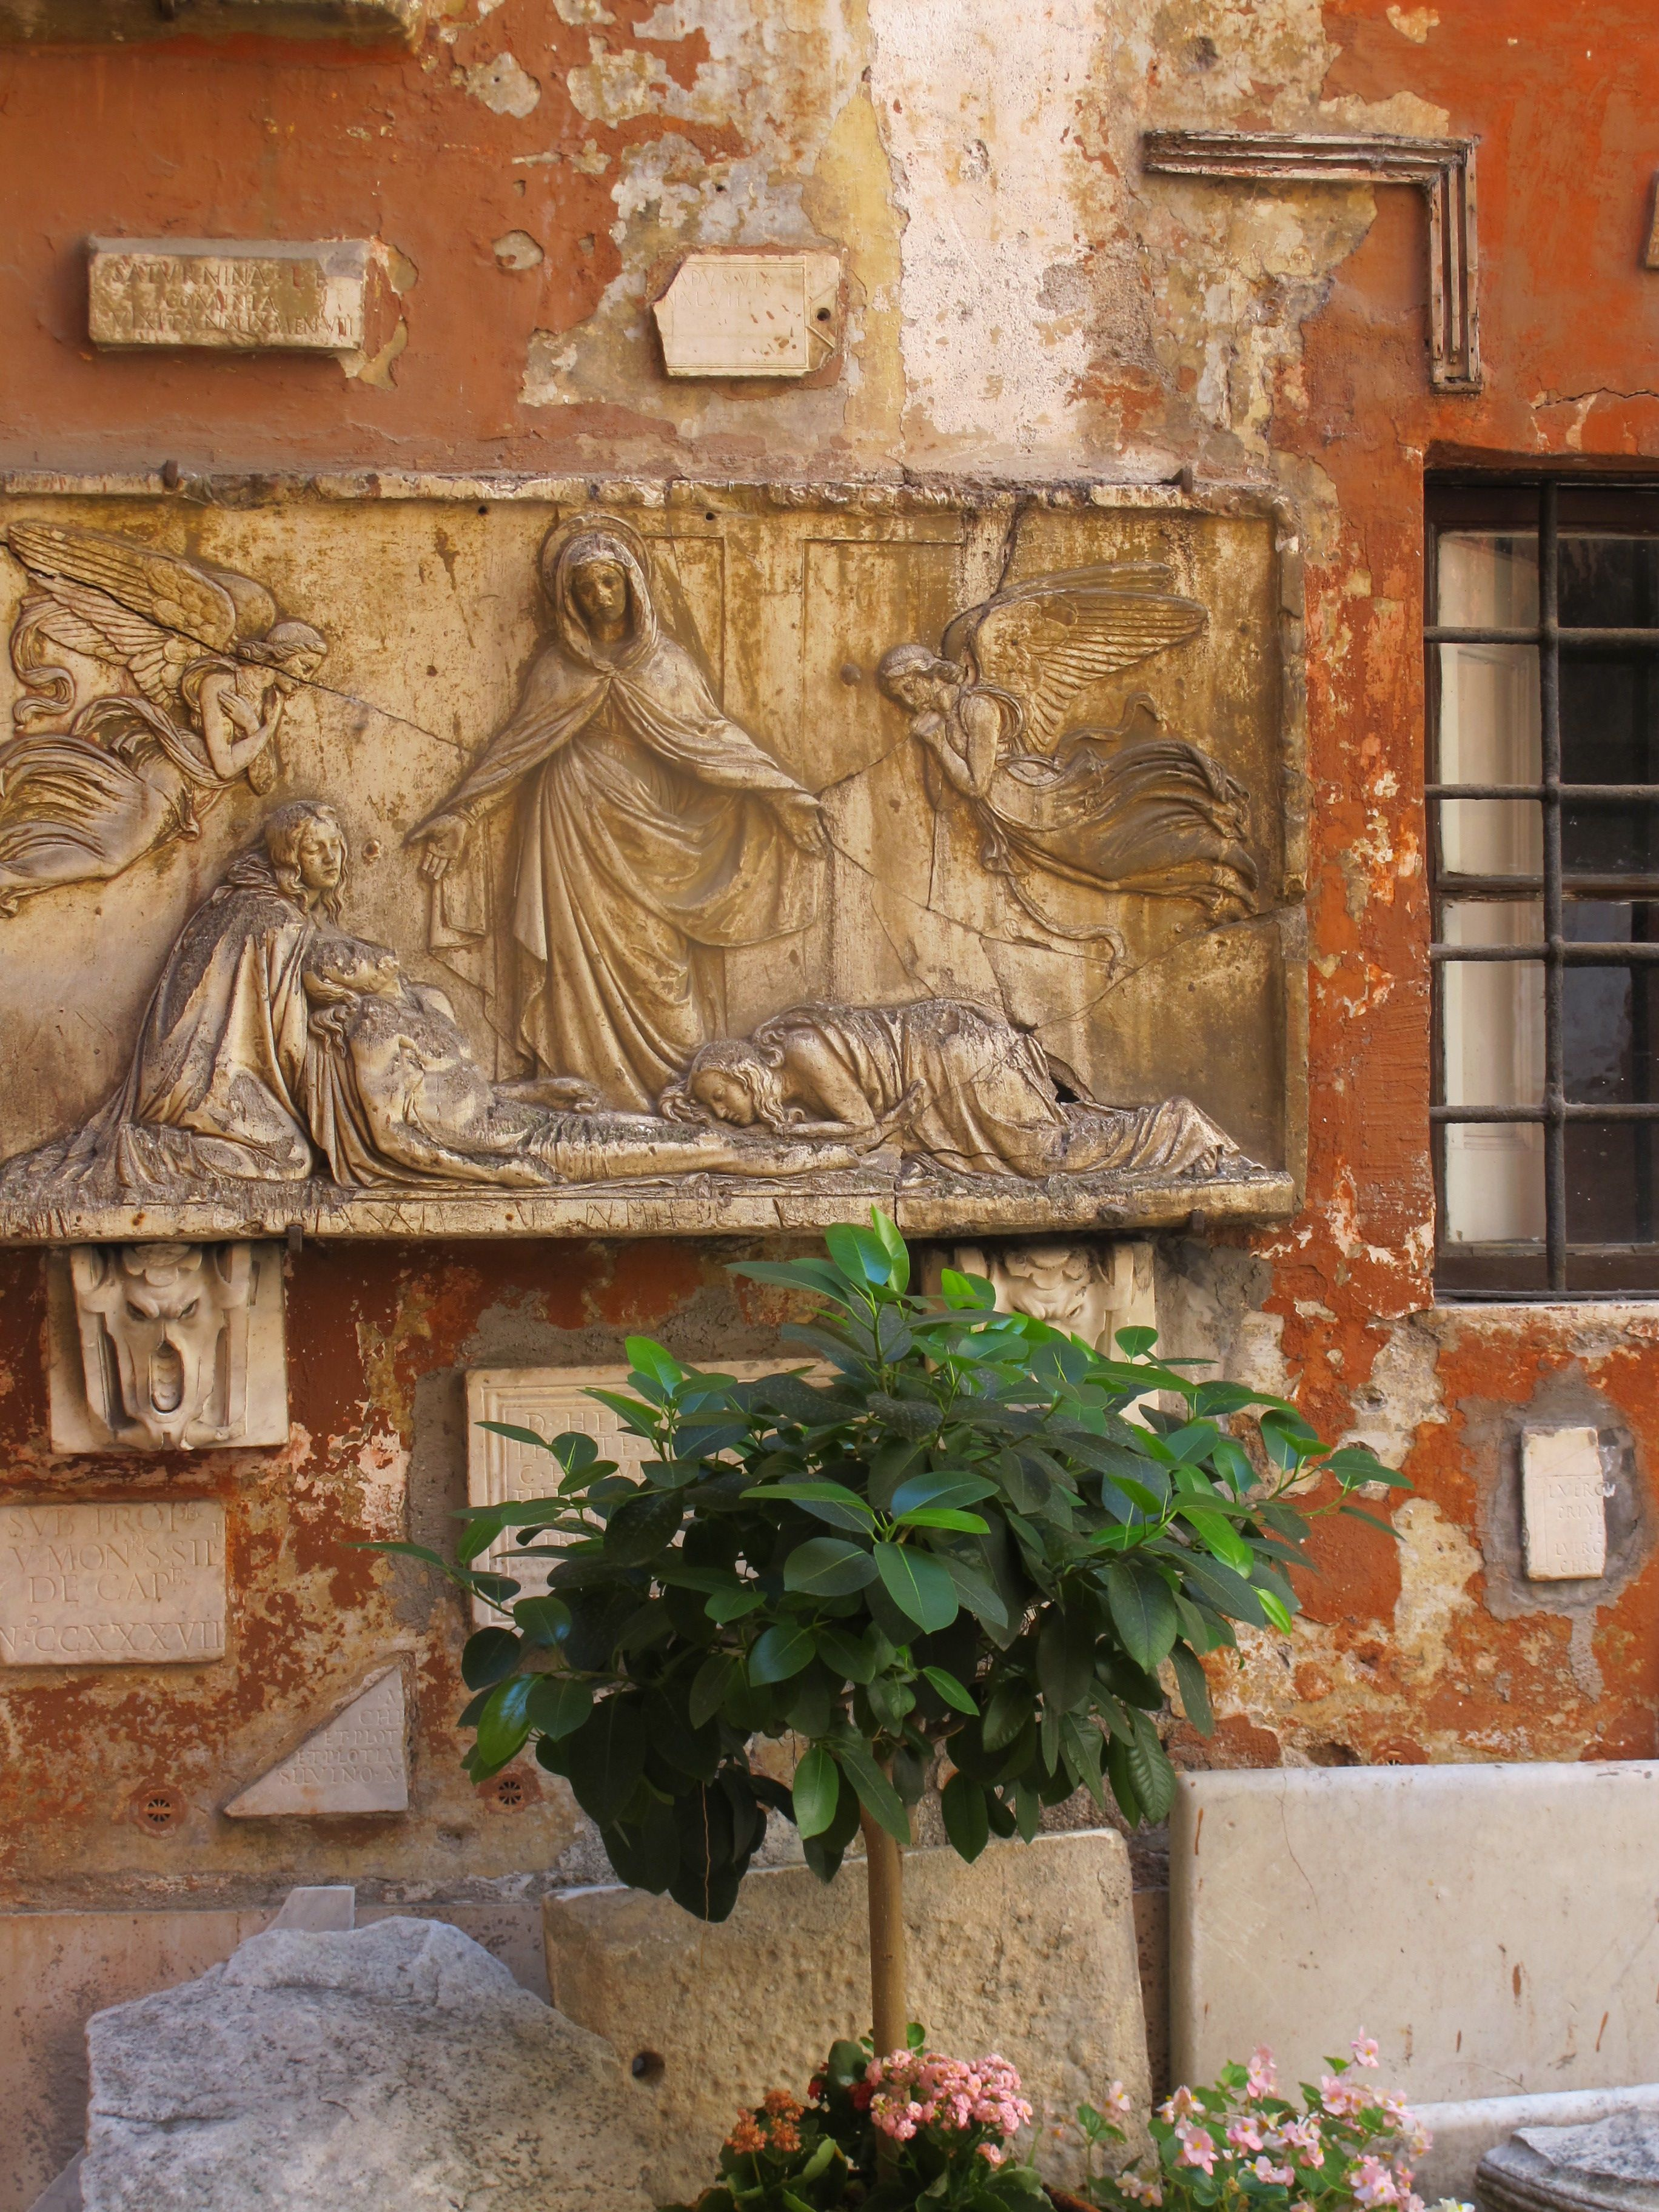 Courtyard of San Silvestro in Capite.